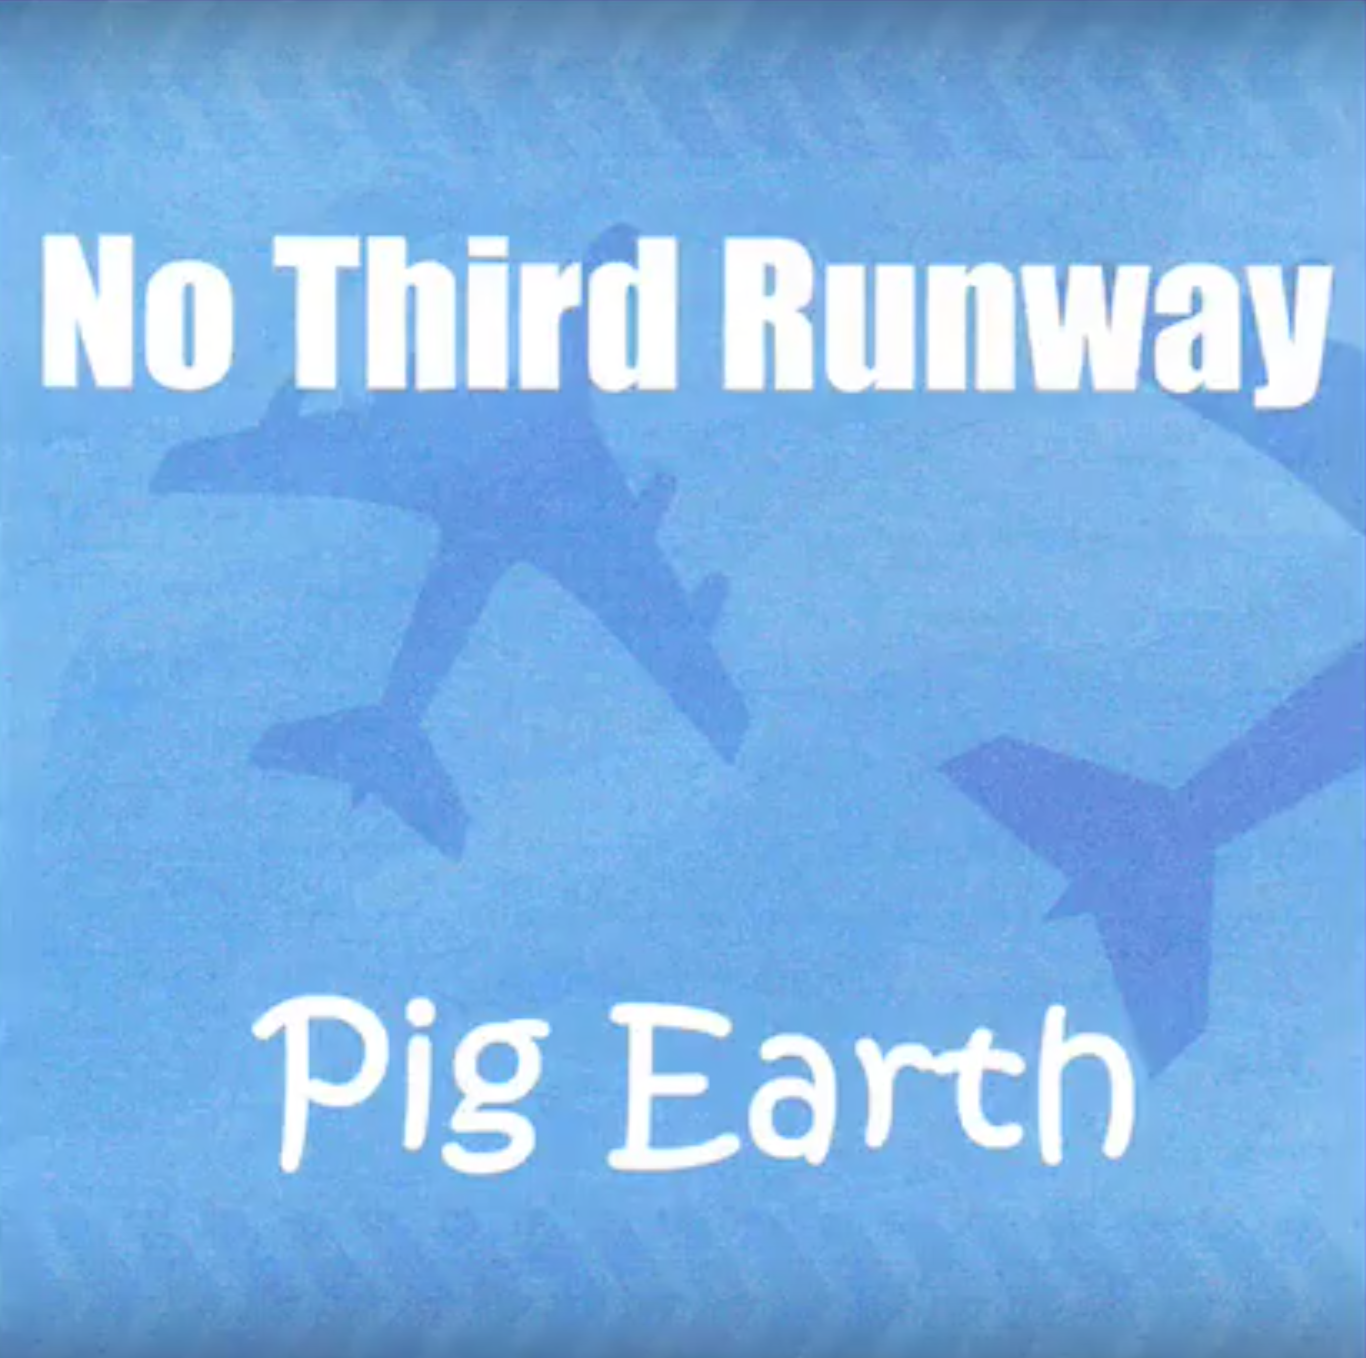 Tucked away on YouTube - Neil's band Pig Earth first posted the song in February 2008